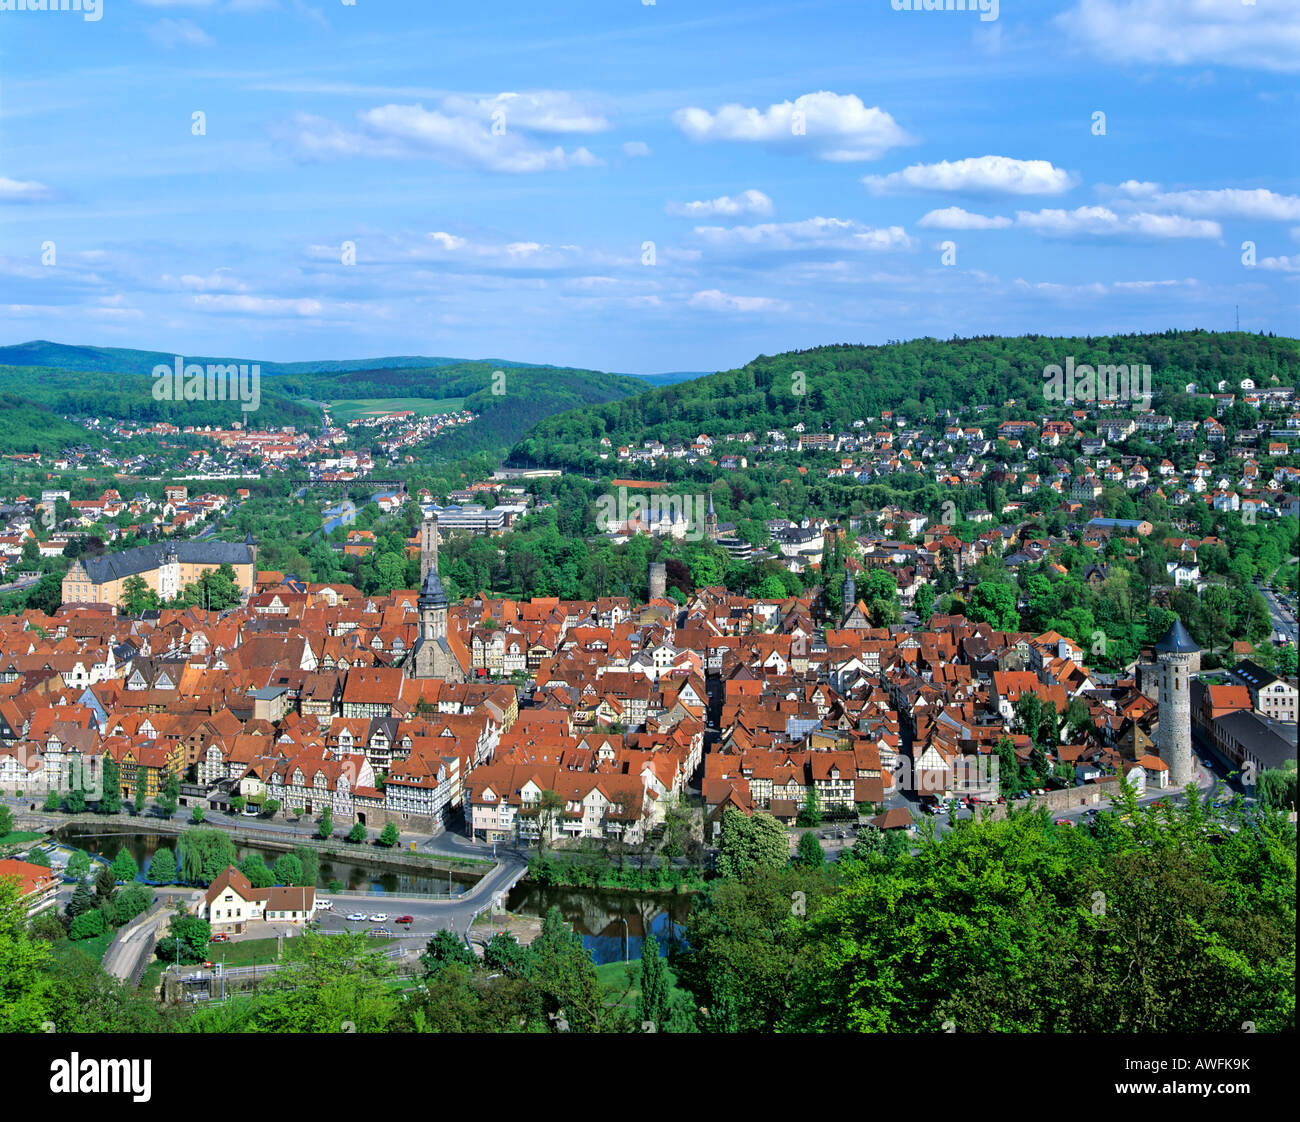 Panoramic shot of Hannoversch Muenden, Weserbergland, Lower Saxony, Germany, Europe - Stock Image